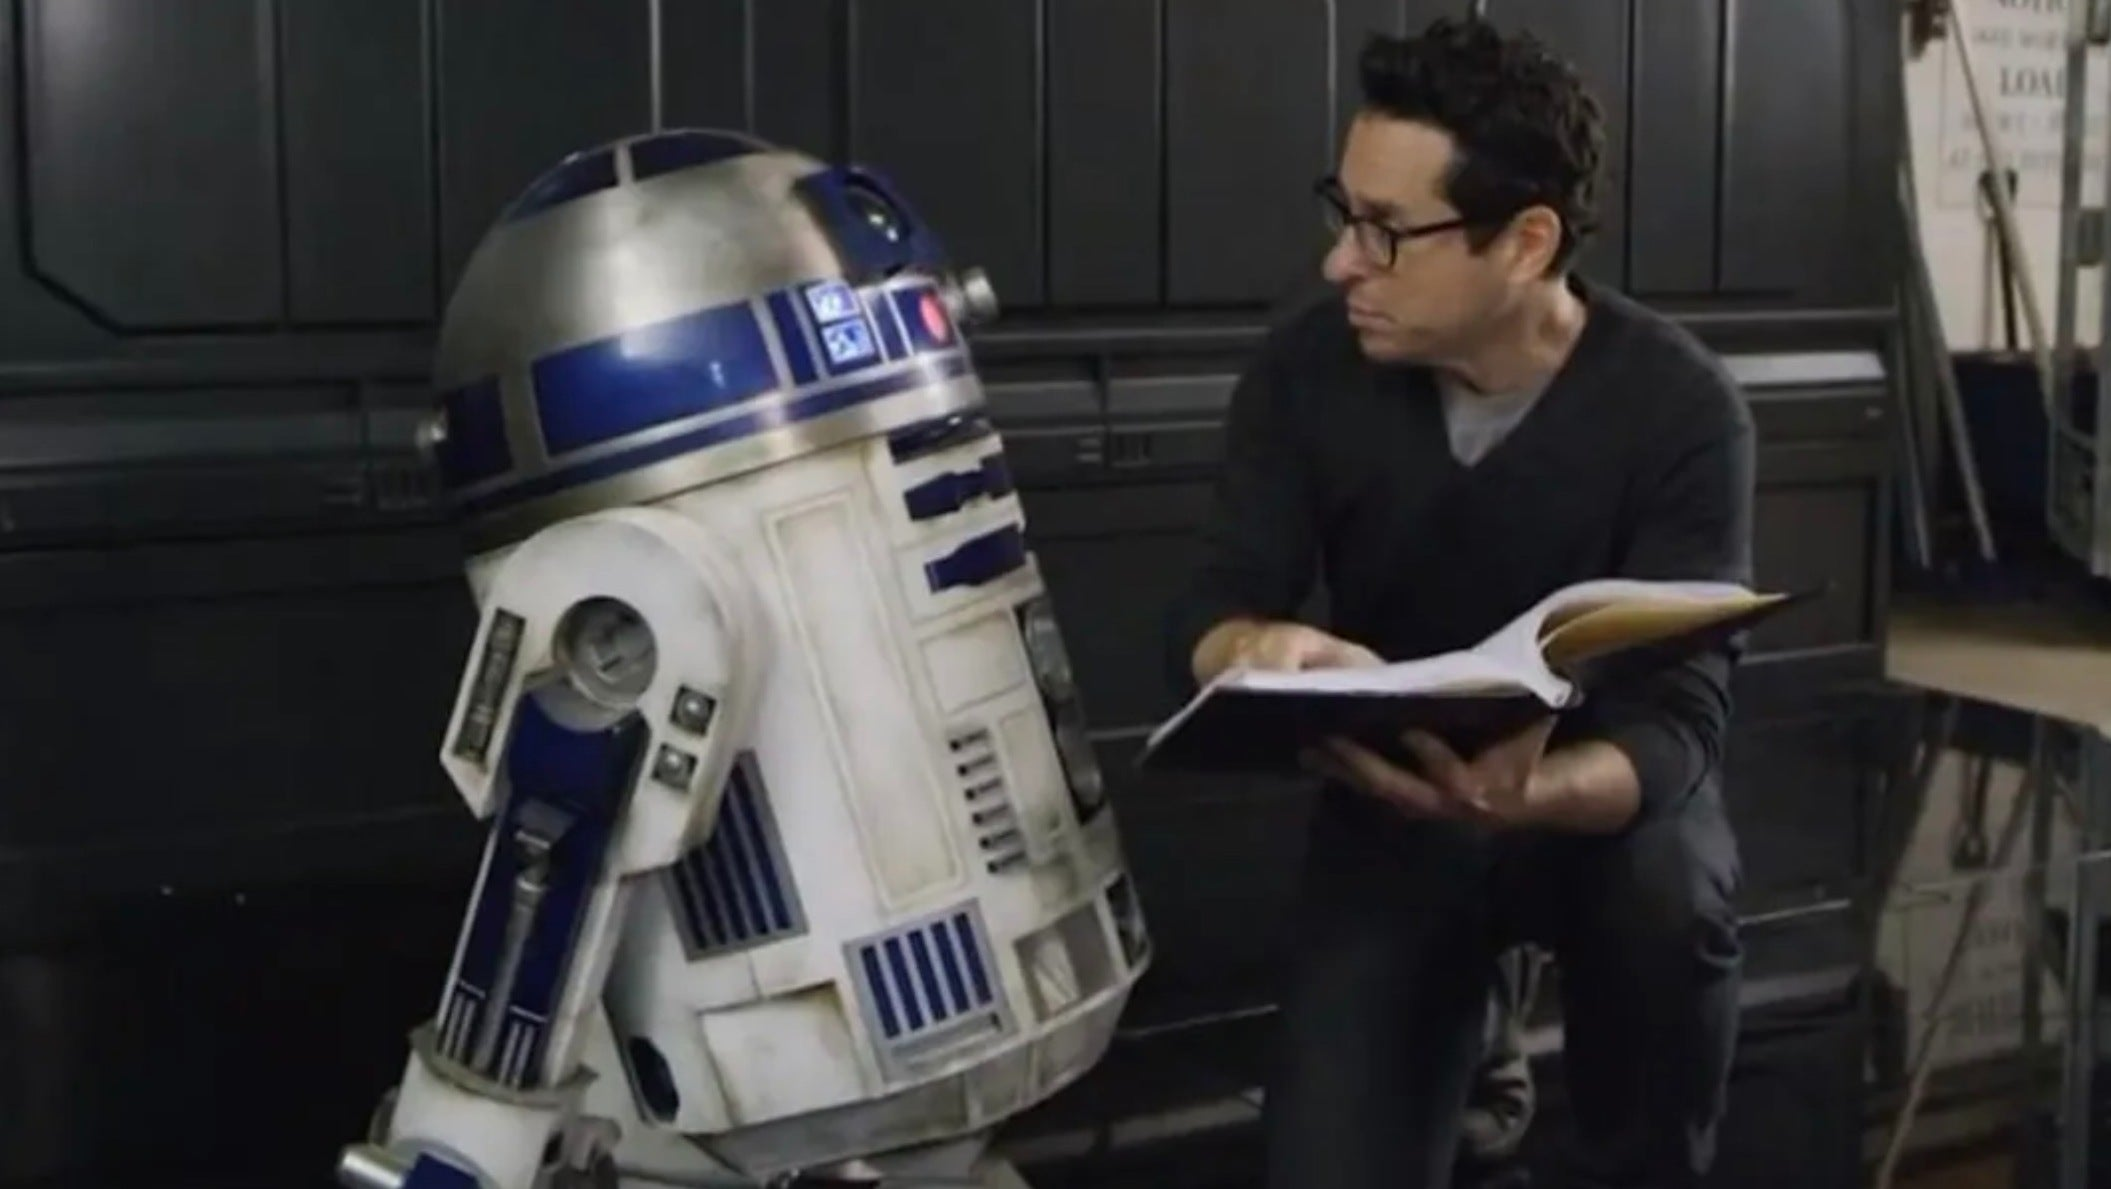 J.J. Abrams Talks About The Immense Responsibility Of Star Wars: Episode 9